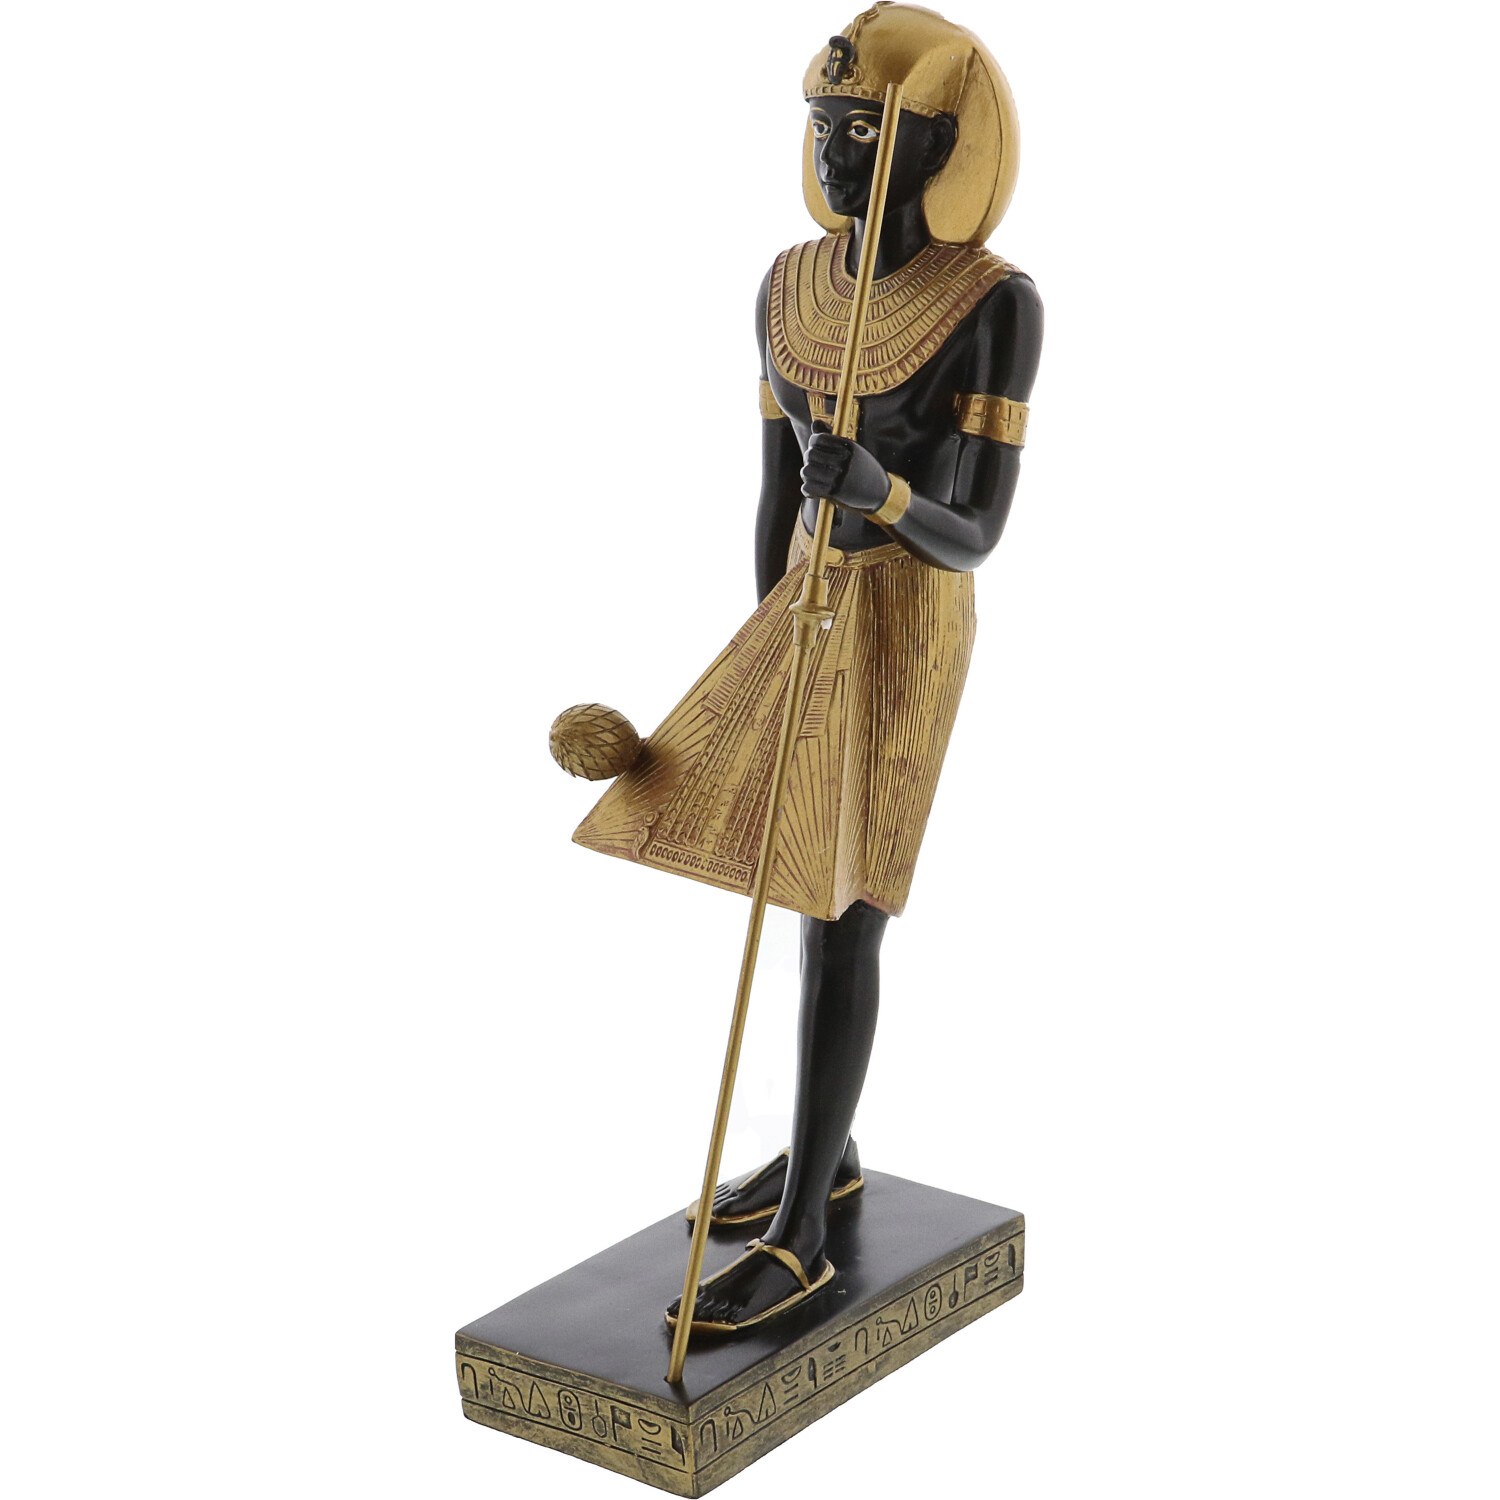 Ptc 11.75 Inch Egyptian Man Guardian Figurine Collectible 7718